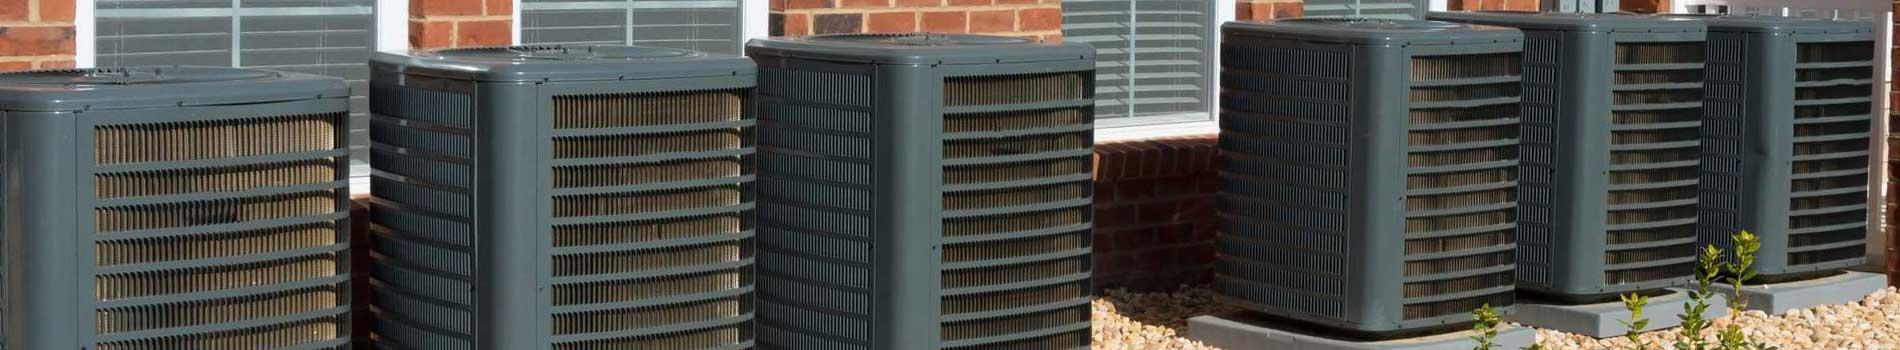 Common Signs of Air Conditioner Failure